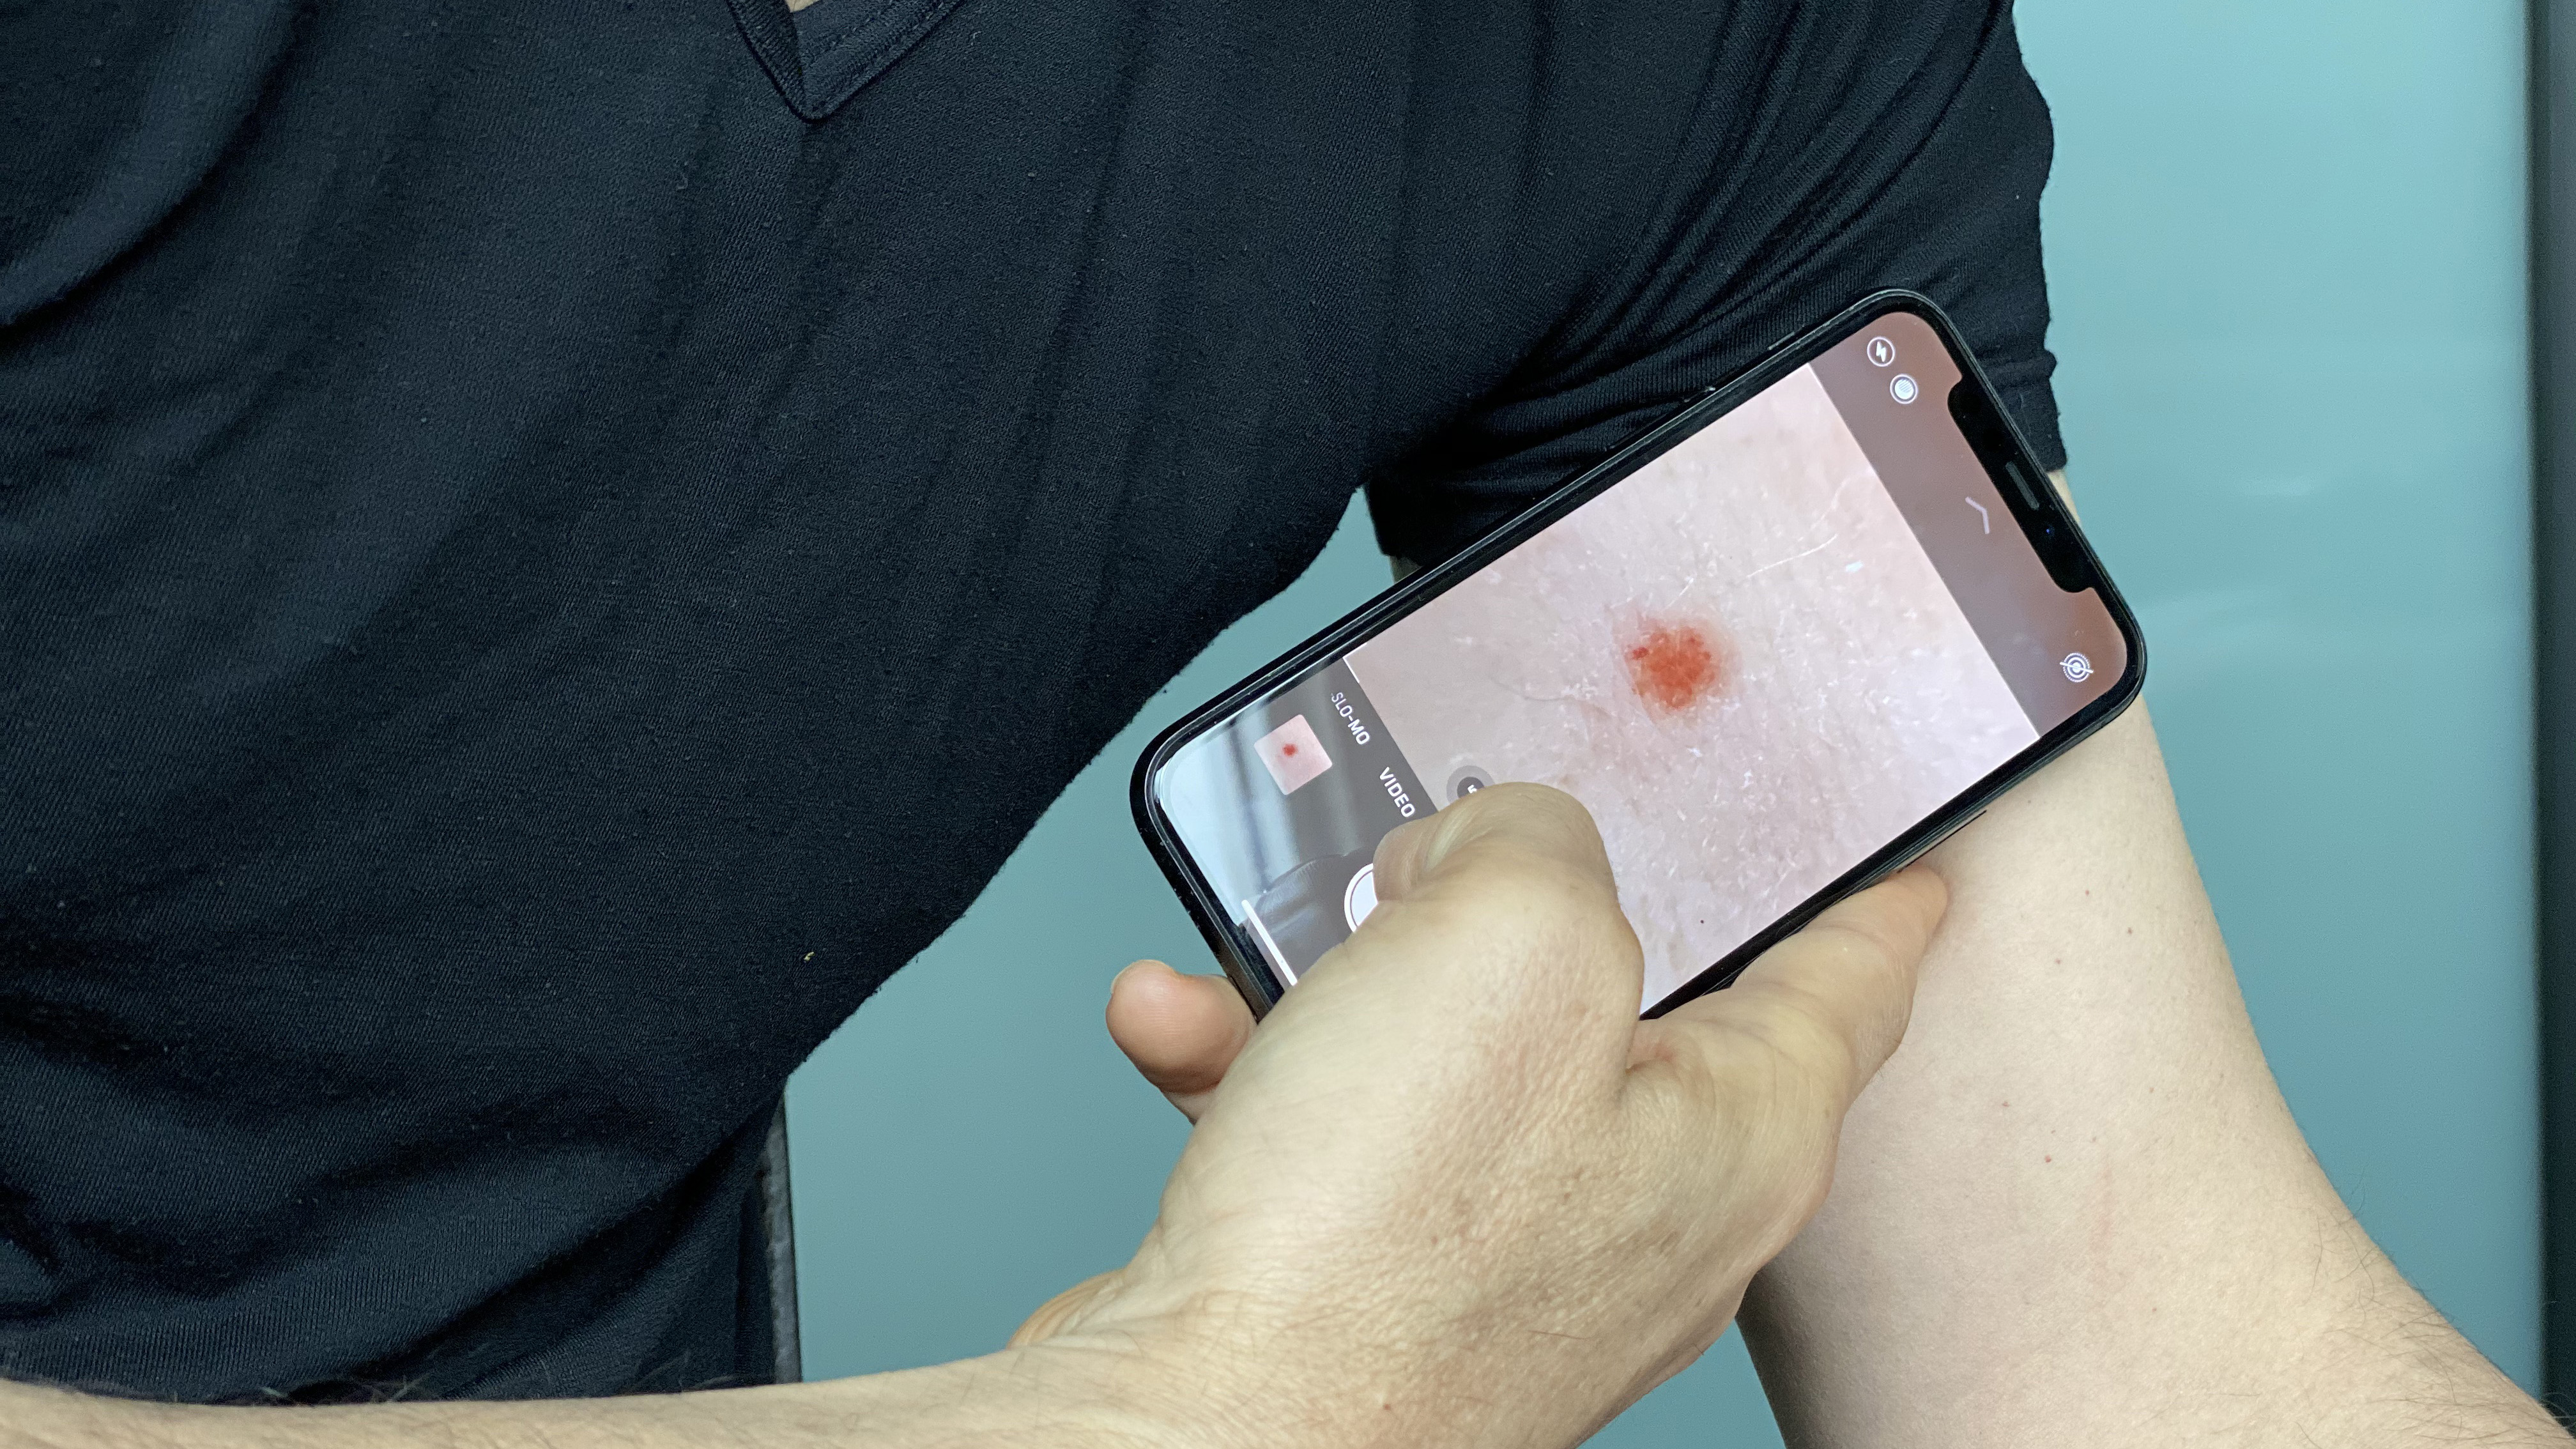 Photographing your skin lesions